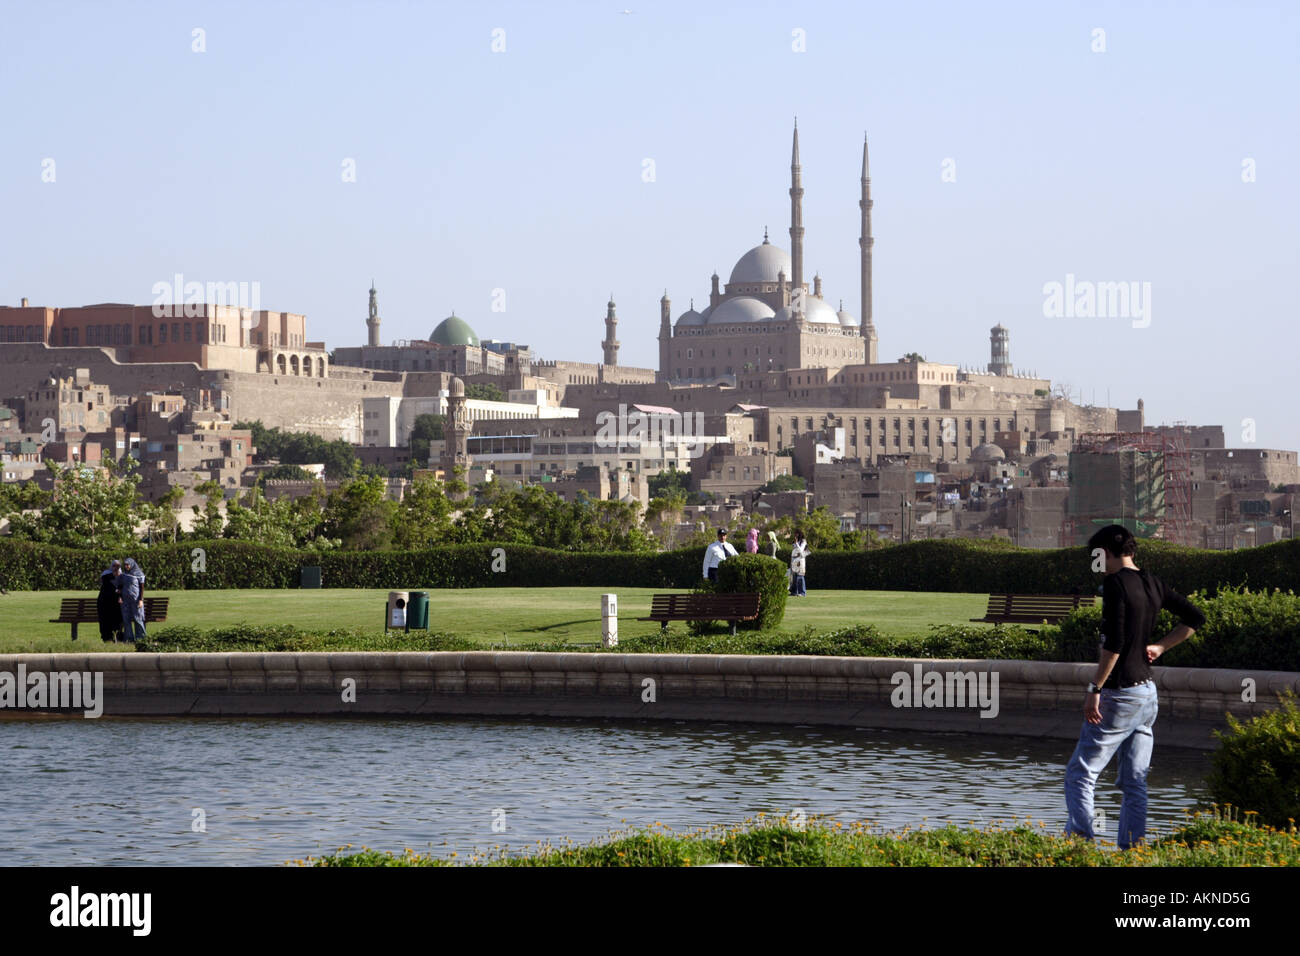 Al-azhar park in cairo & Muhammad Ali mosque at citadel - Stock Image